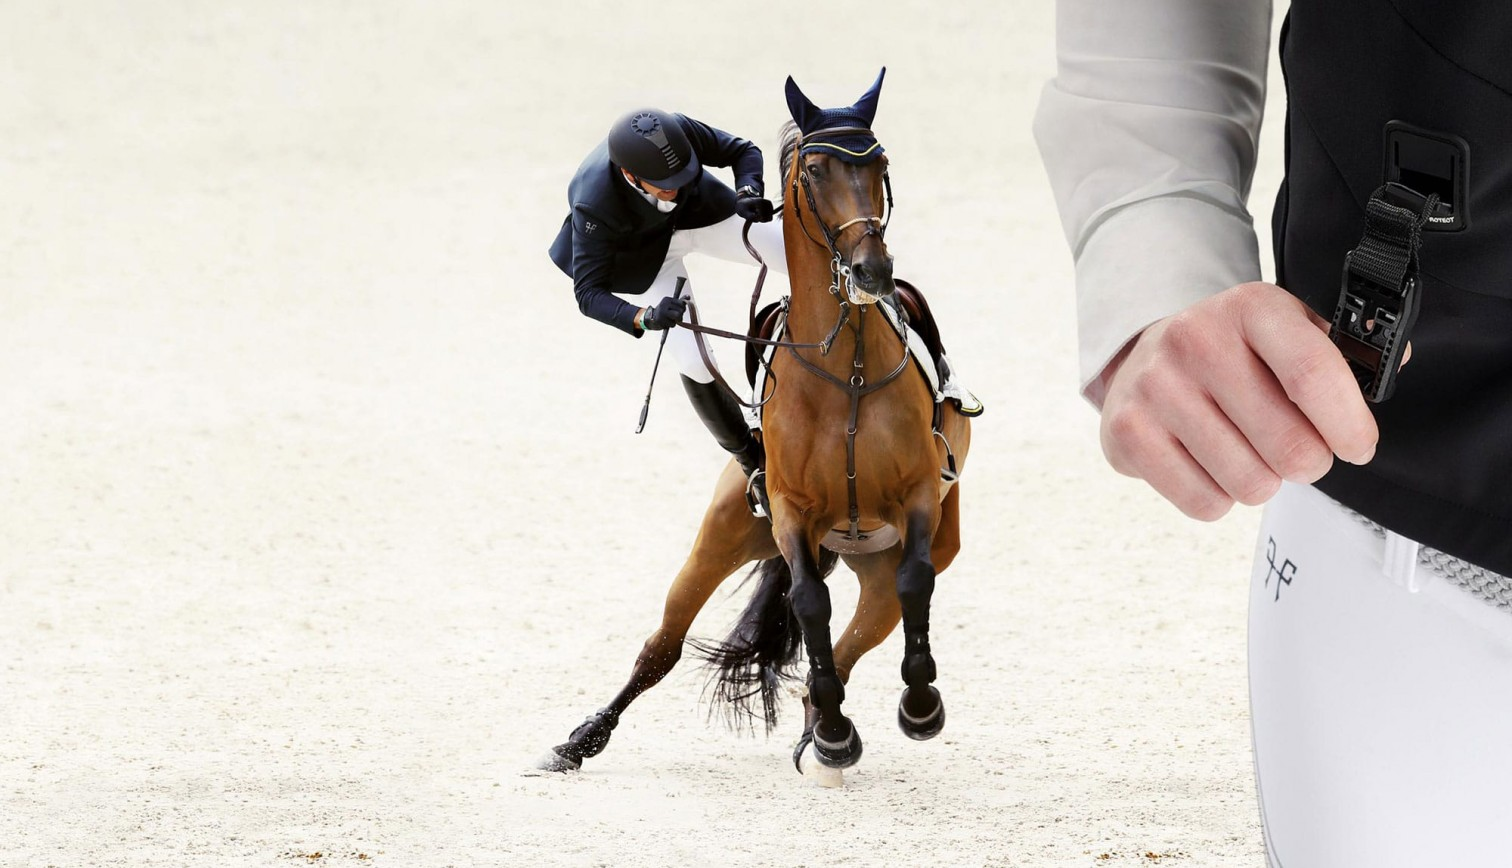 Airbag For Riders Our Athletes Give Their Opinion Technical Clothing For Riders Horse Pilot